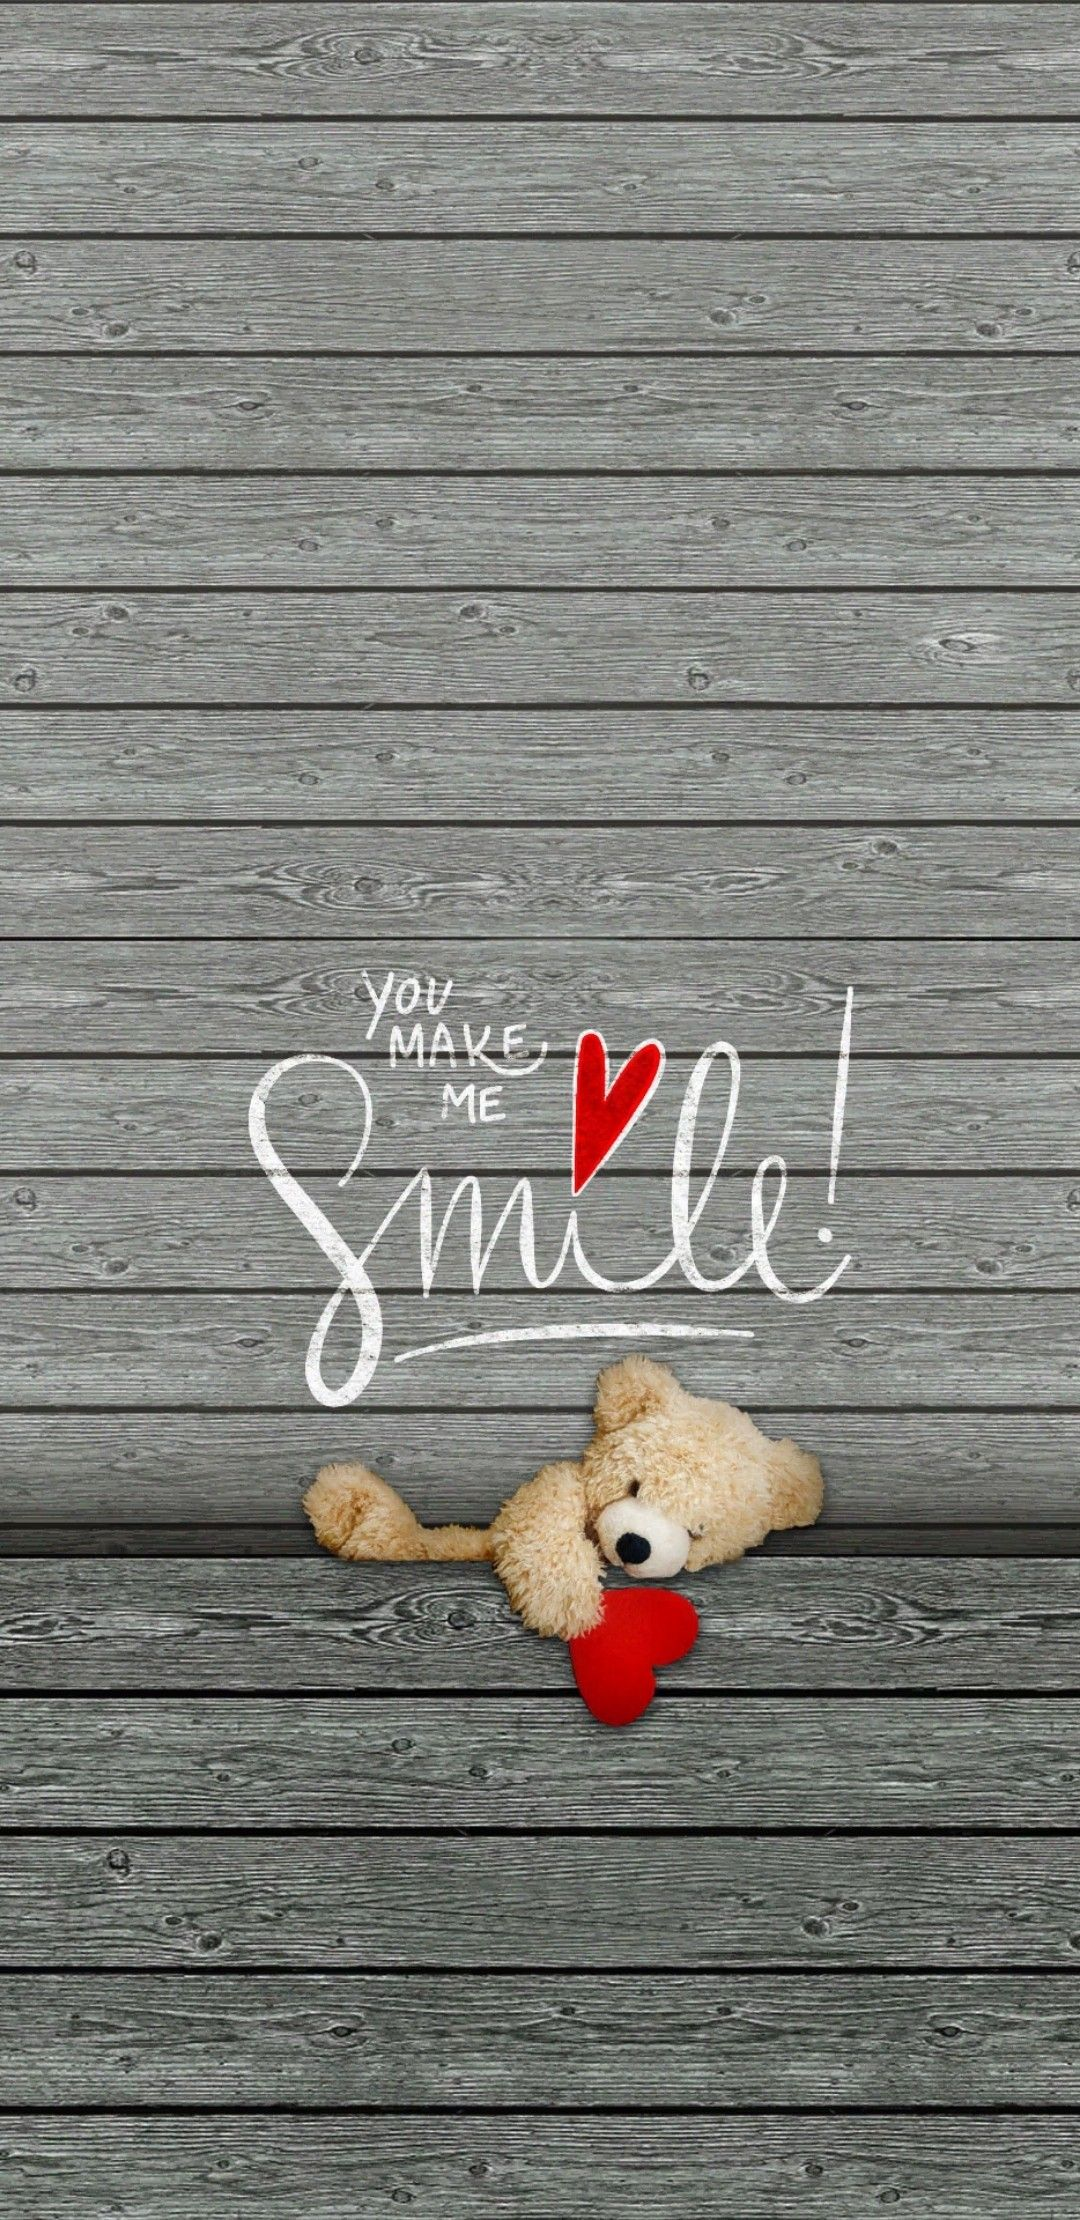 Pin By Ruthtupper On Teddy Bear Wallpaper Smile Wallpaper Happy Wallpaper Love Wallpaper Cute teddy bear wallpapers for android